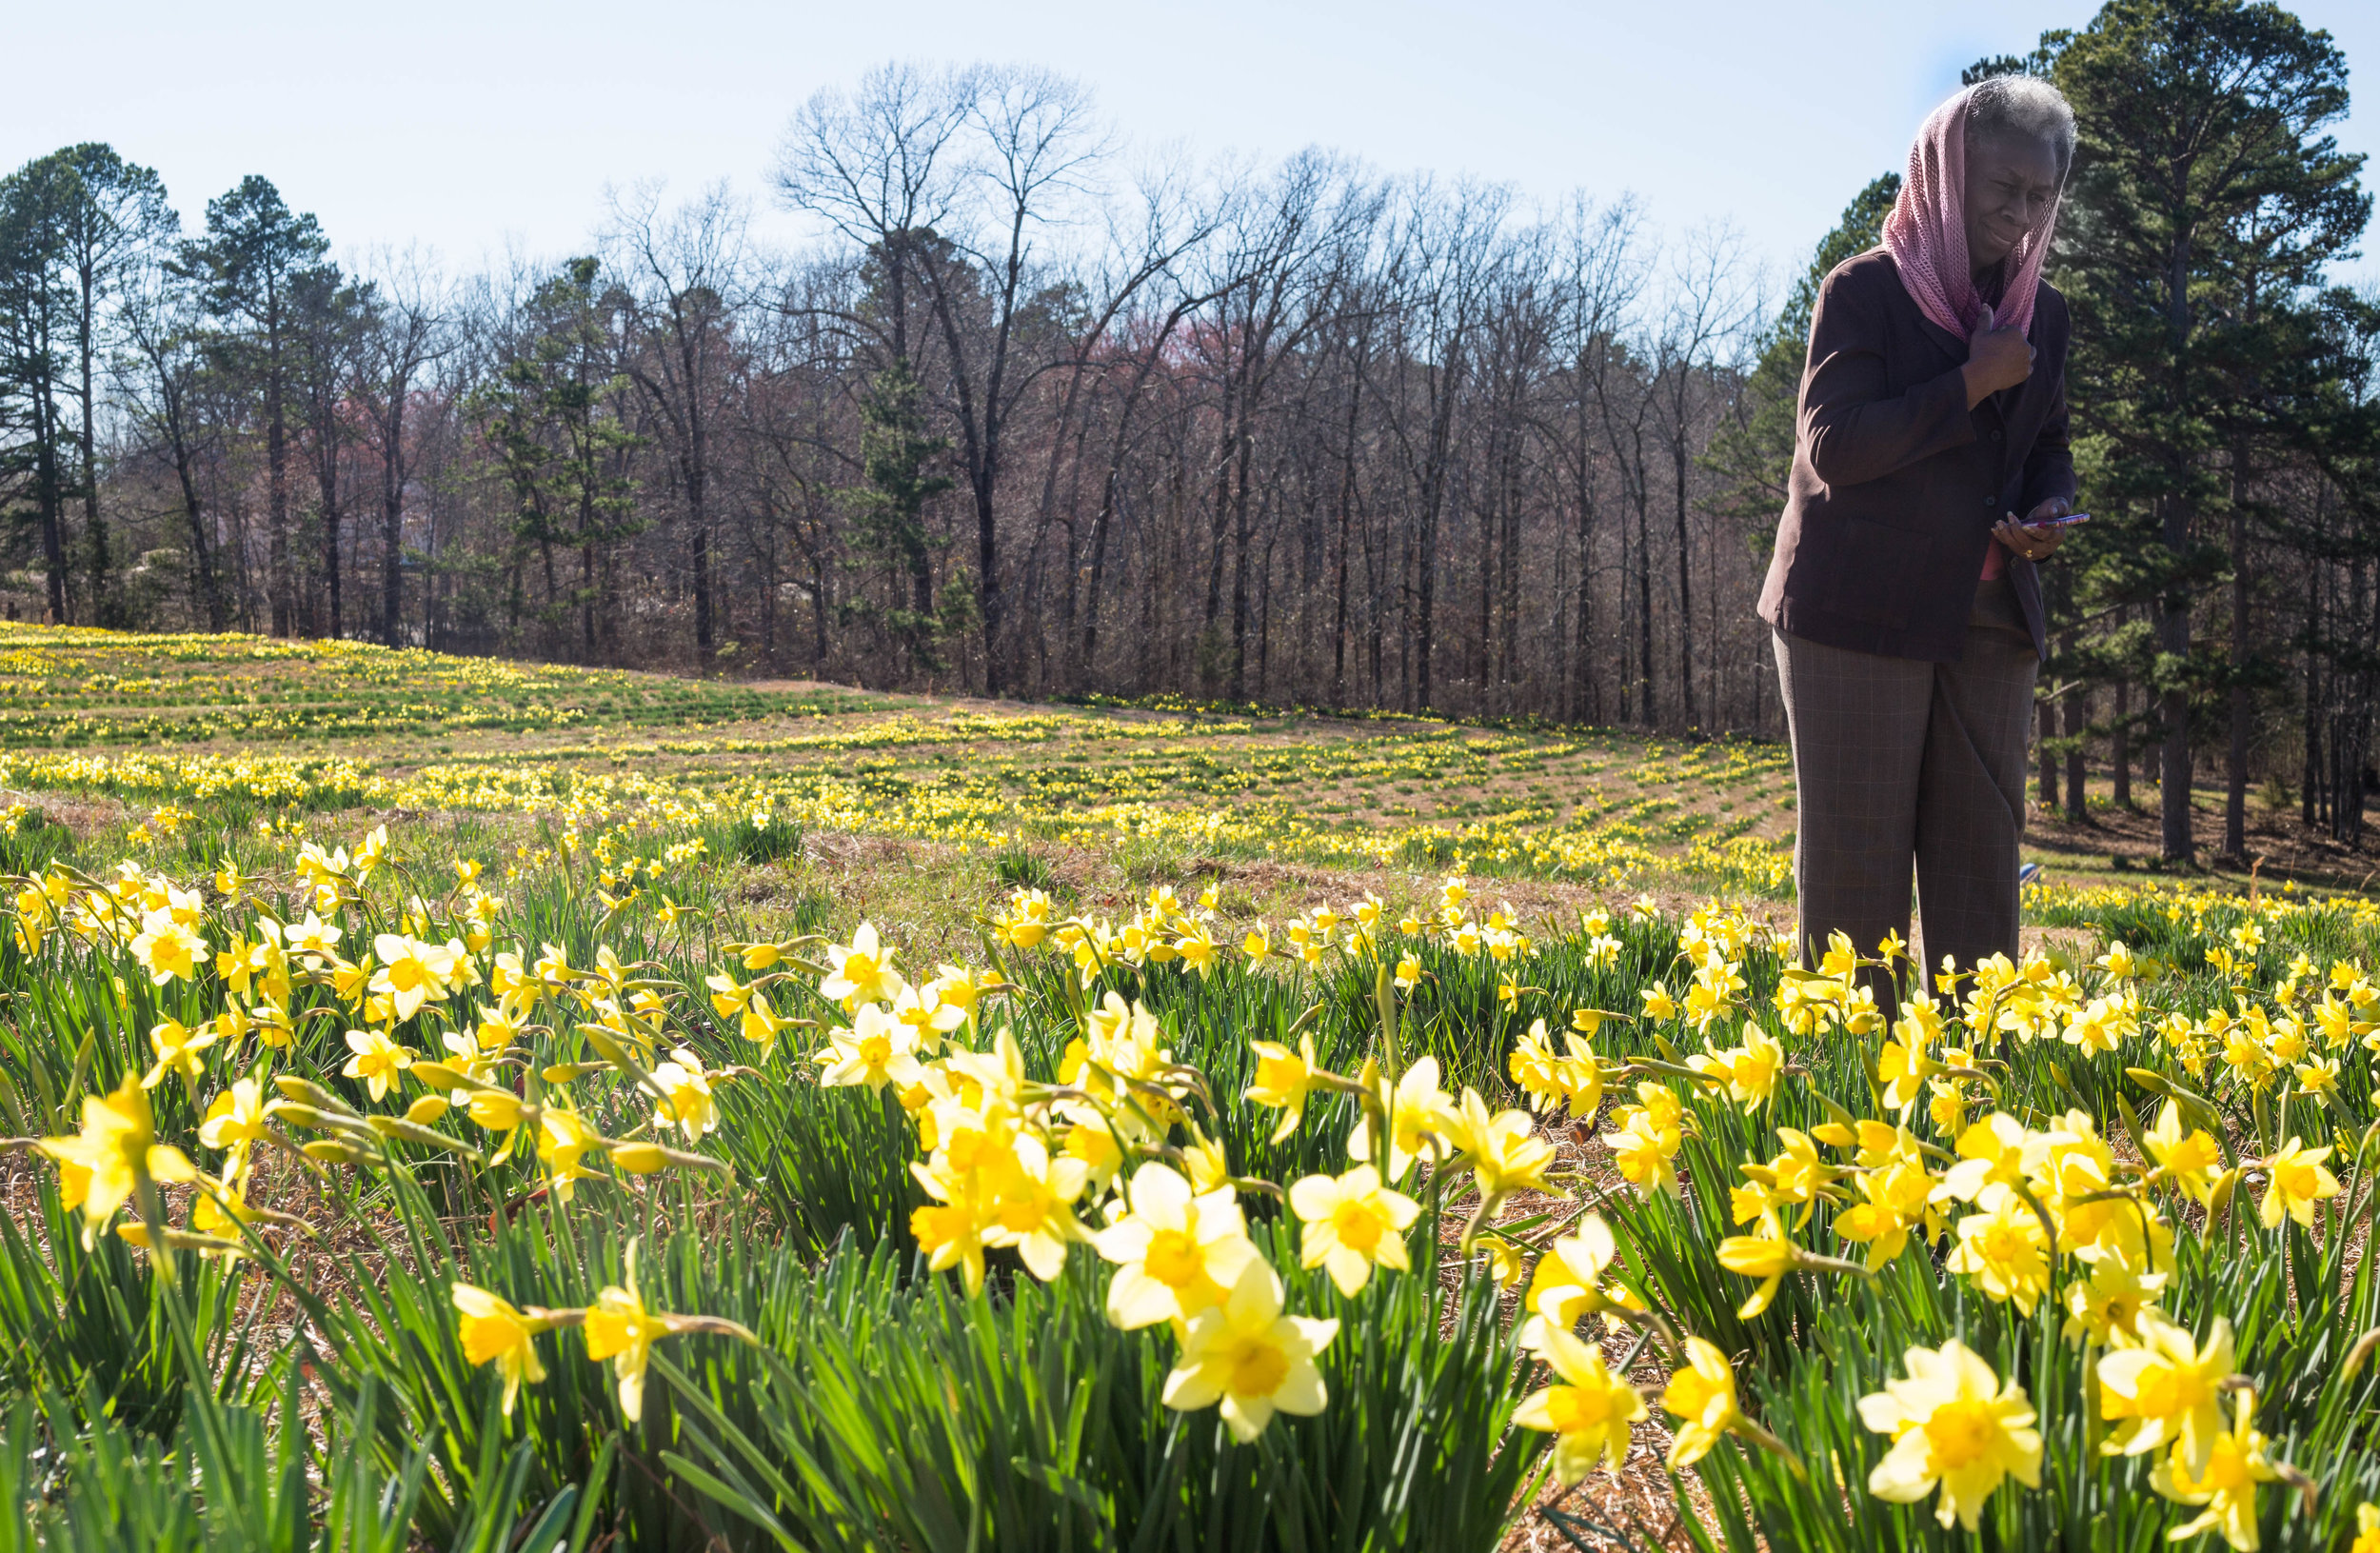 Lucille Rogers enjoys a stroll through Wye Mountain Church's famous daffodil field with her other Latter Day Saint friends on a sunny Arkansas Sunday.